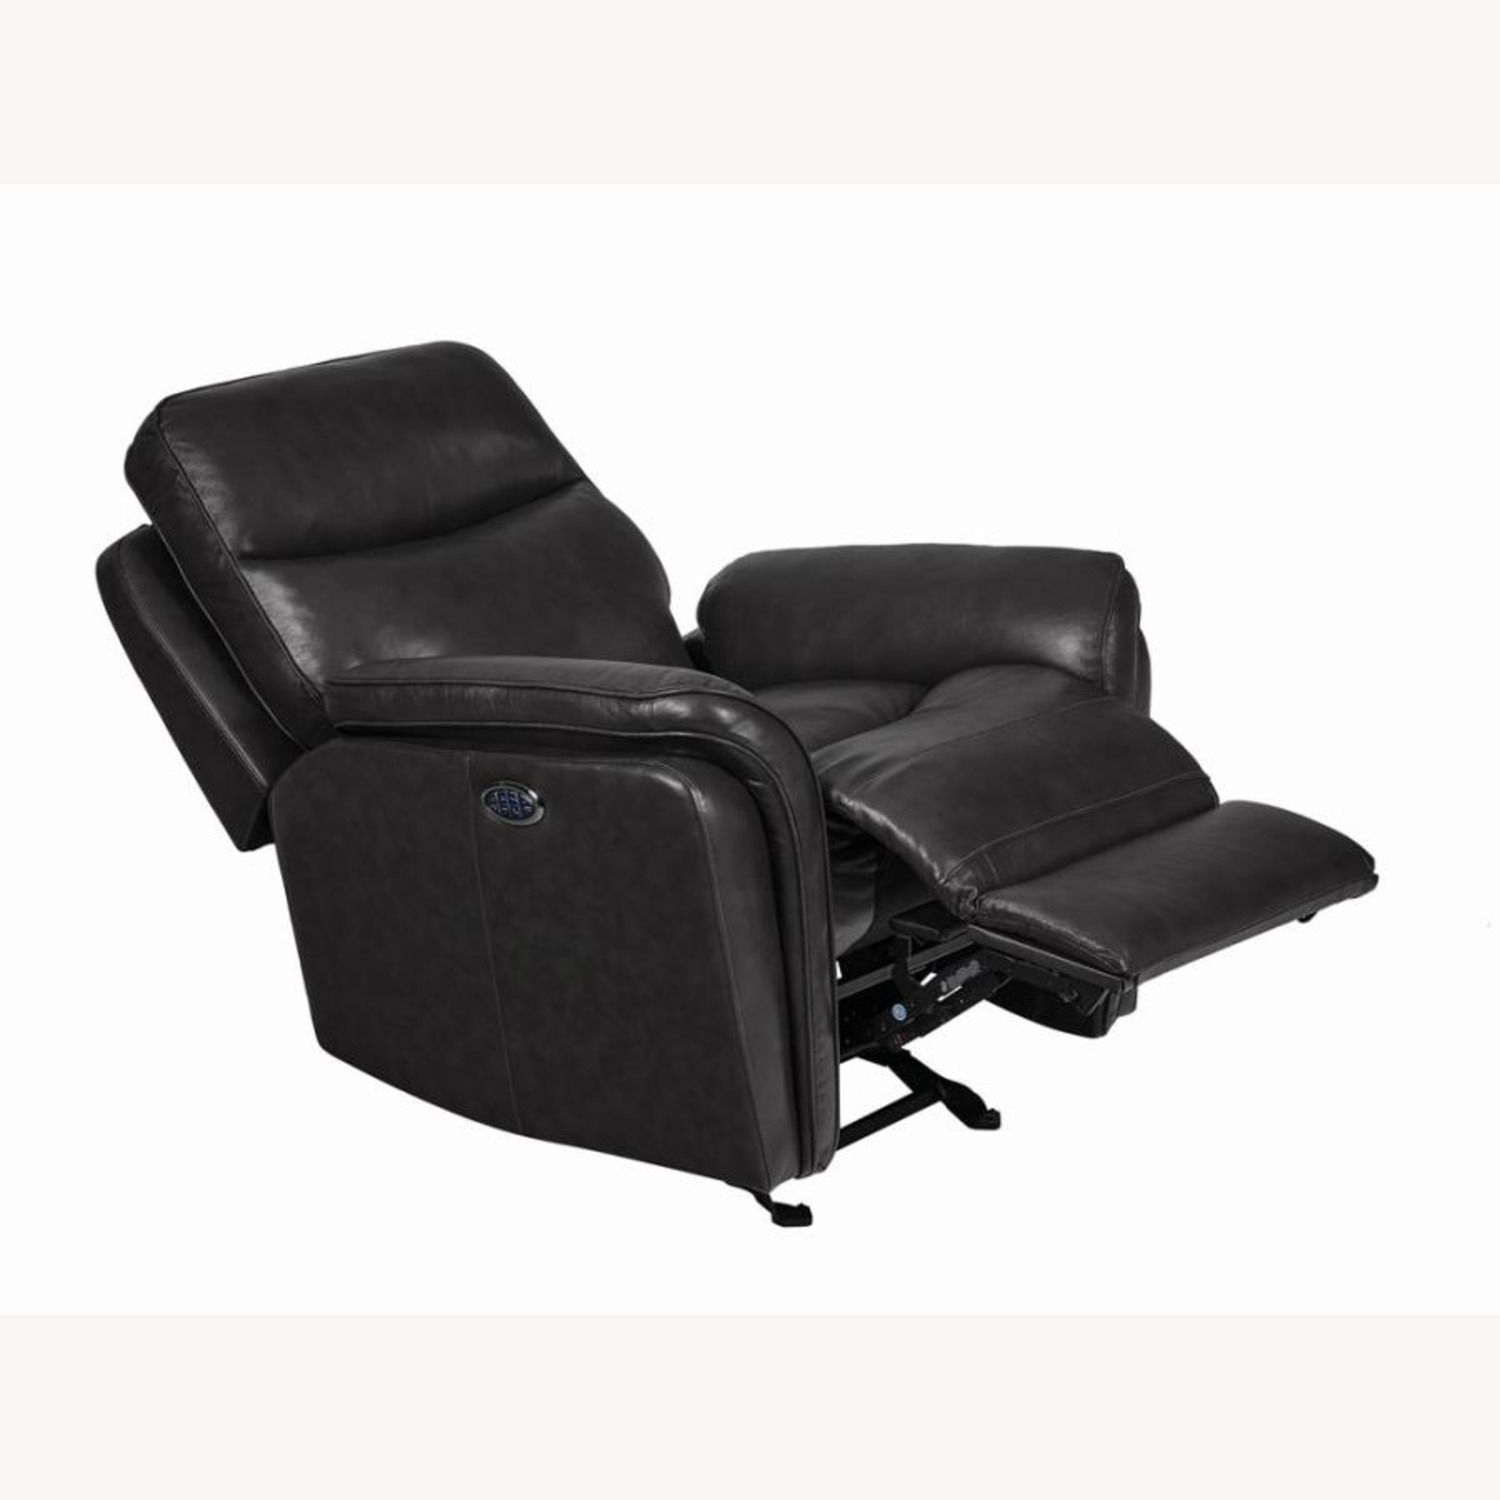 Power Glider Recliner In Charcoal Leather - image-1